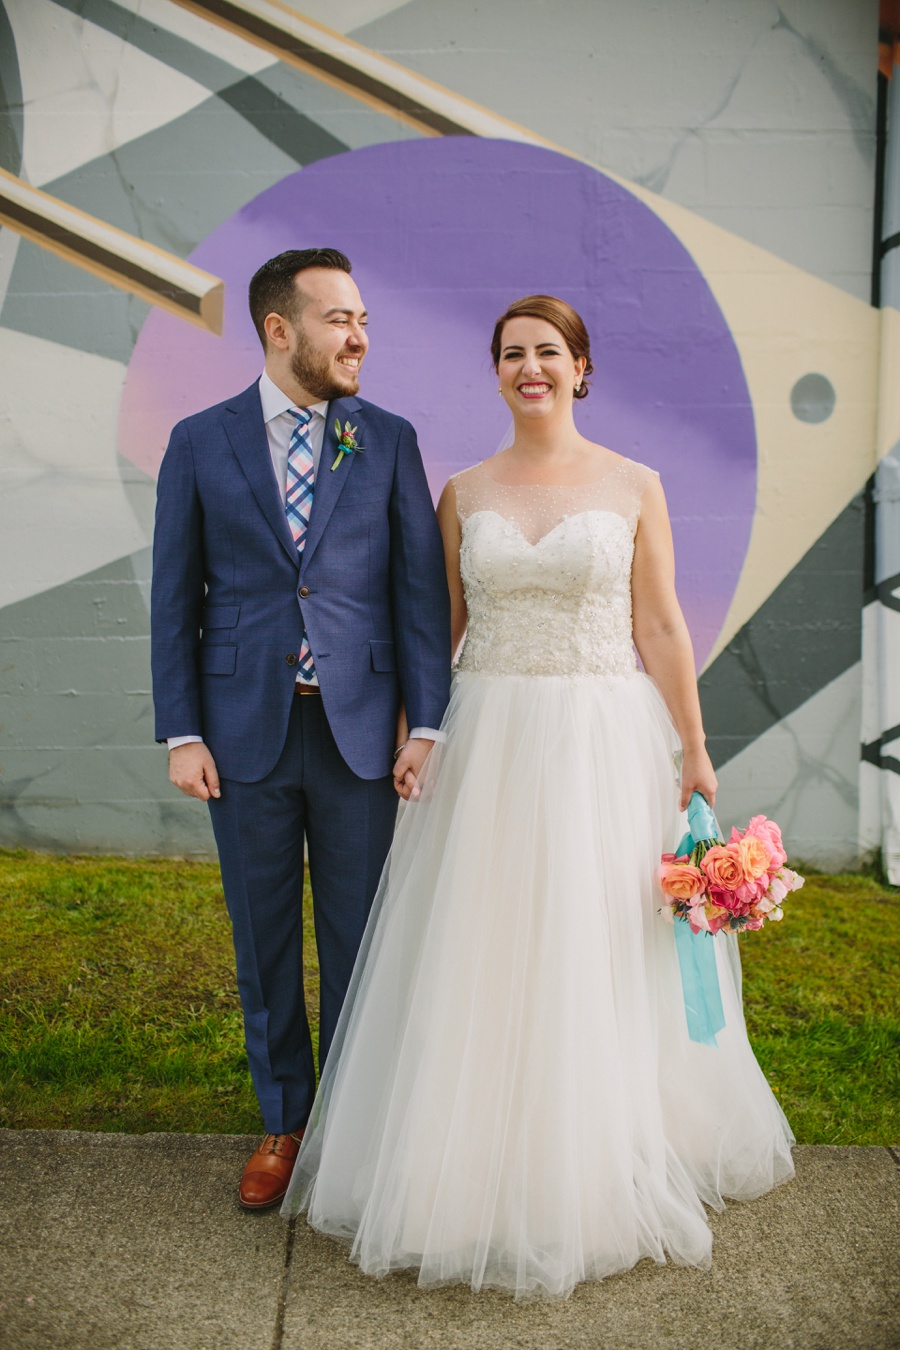 Vancouver Bride and Groom Portraits